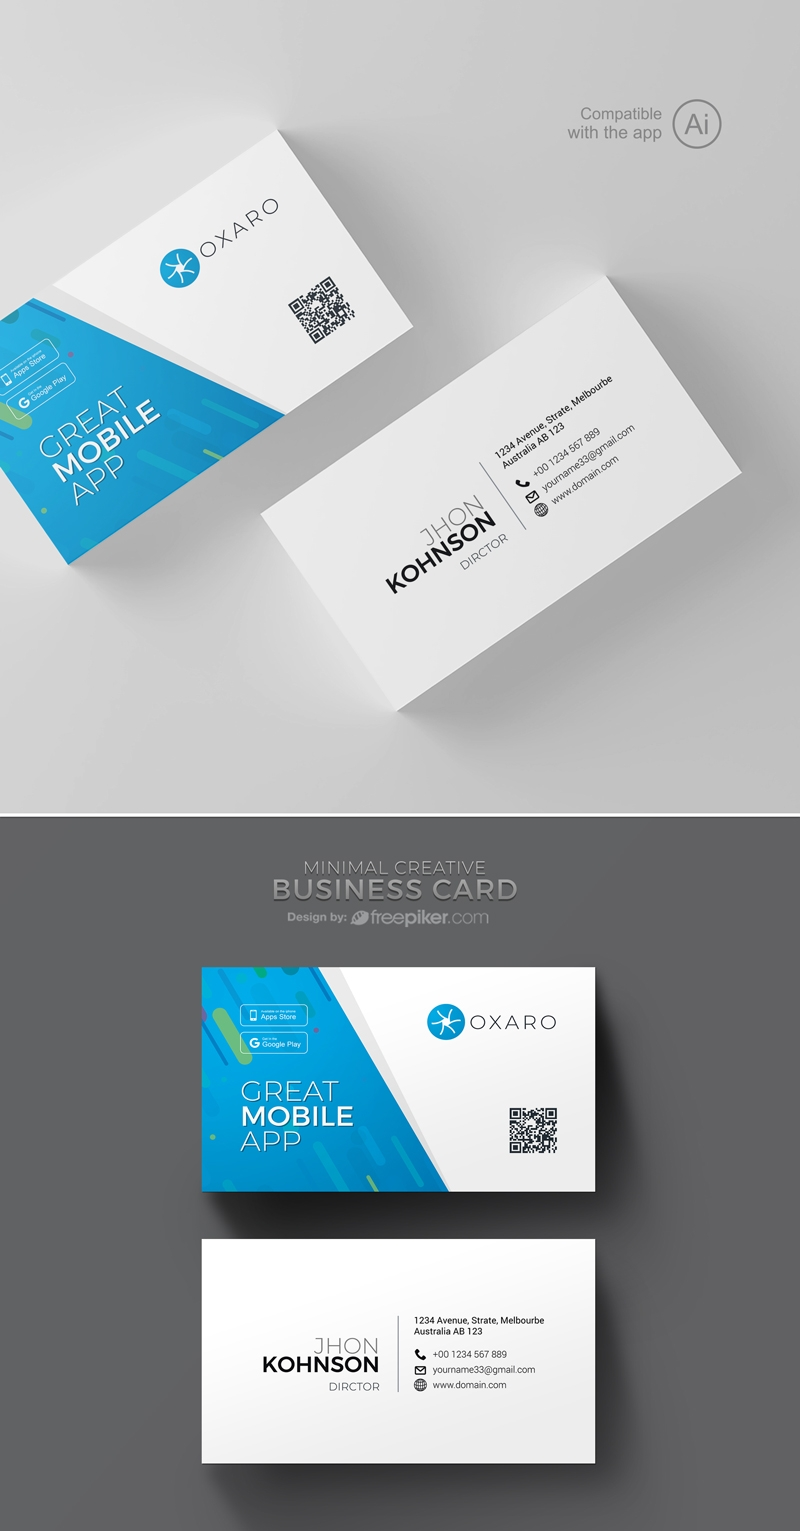 Great MobileApp Business Card Template